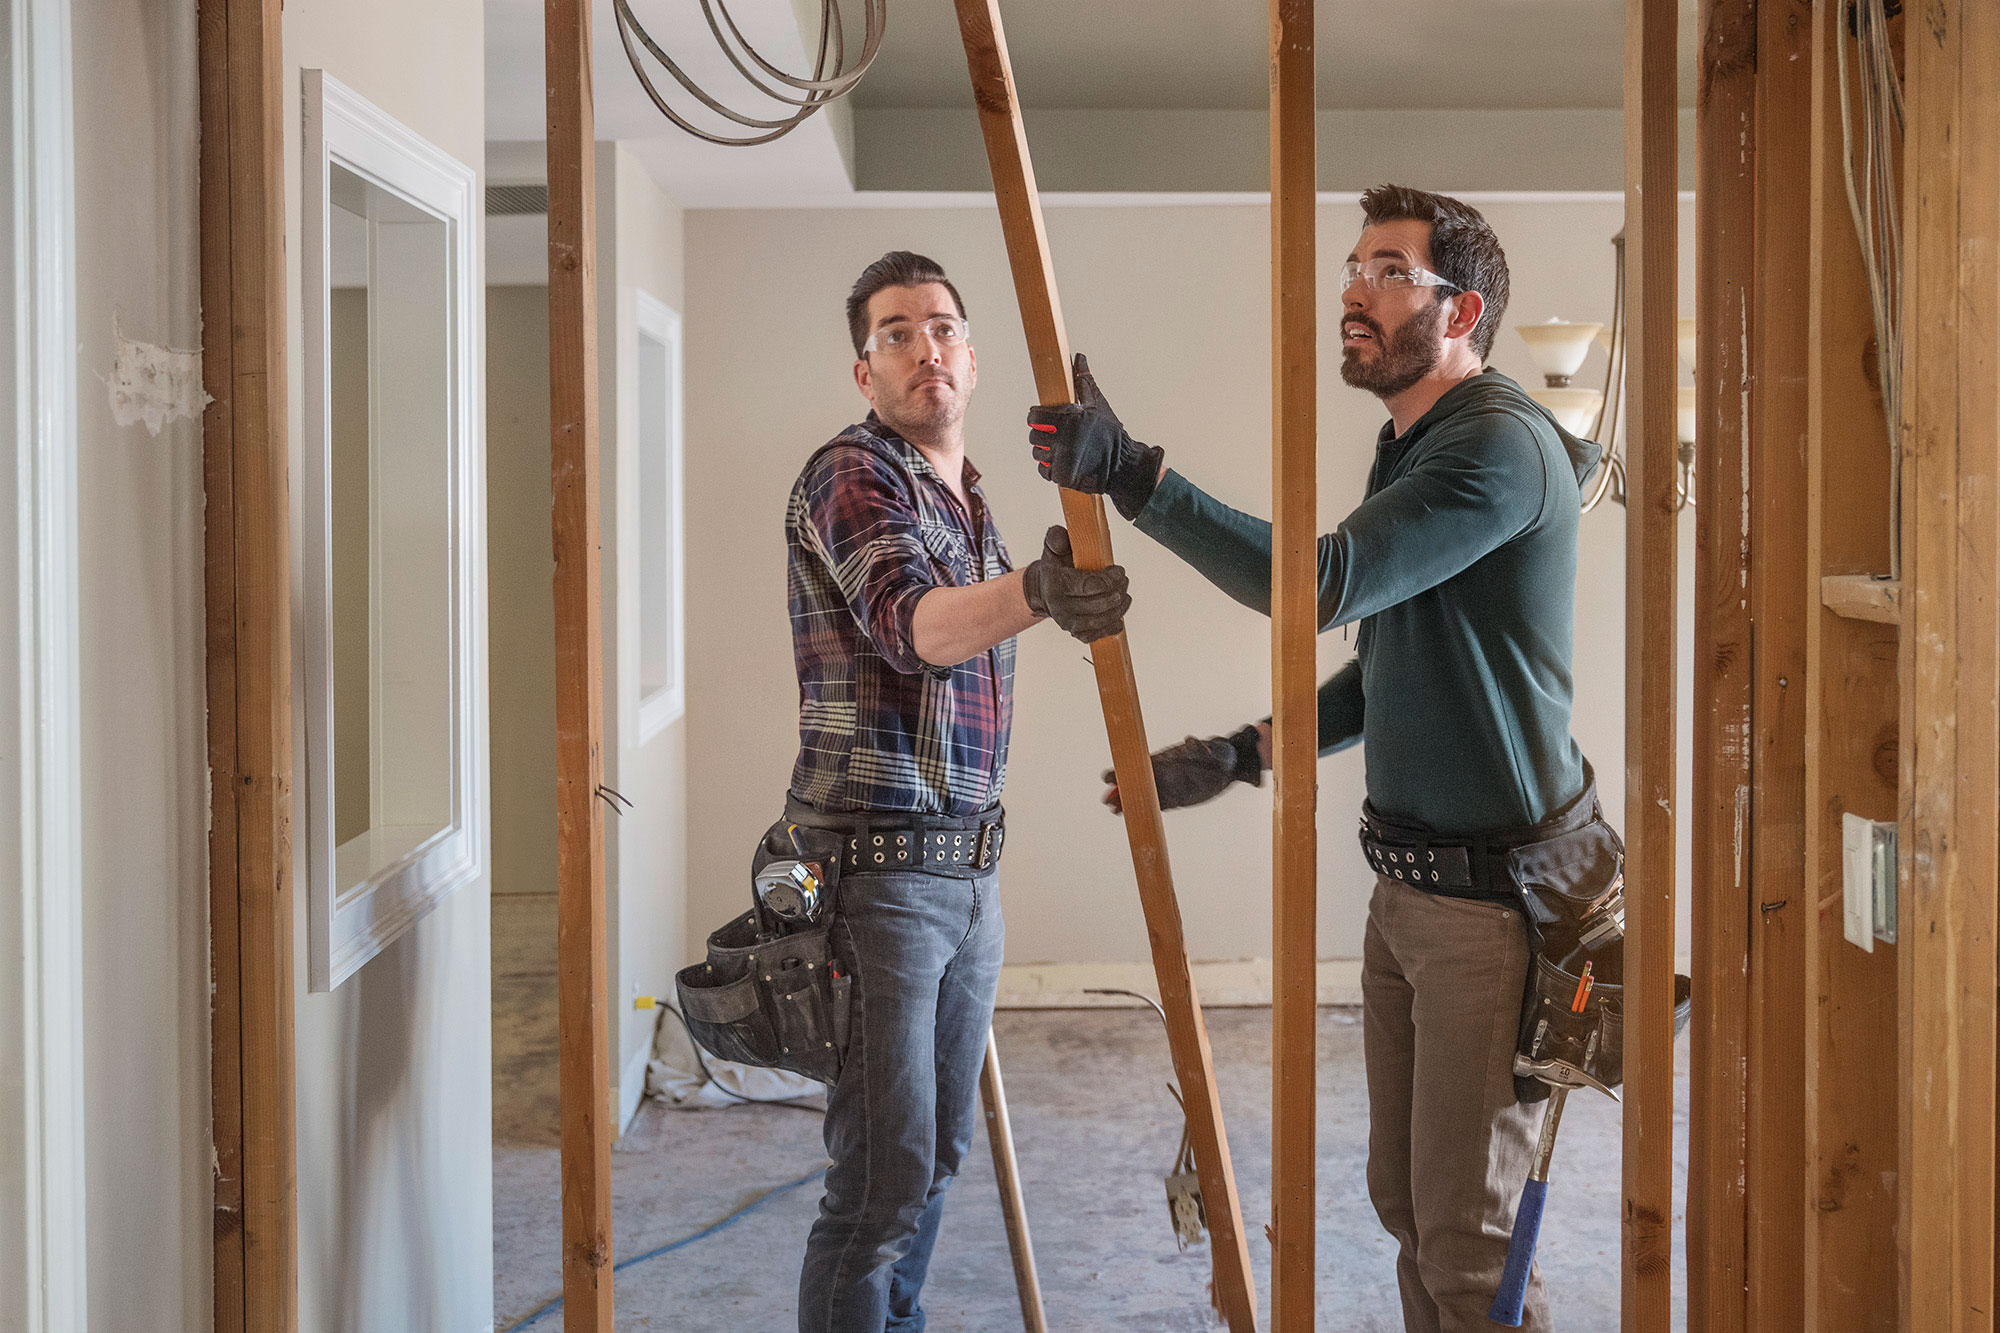 The Property Brothers' New Show Forever Home Will Have 'More Heart': 'We Love What We Do' property-brothers-forever-home-hgtv-2